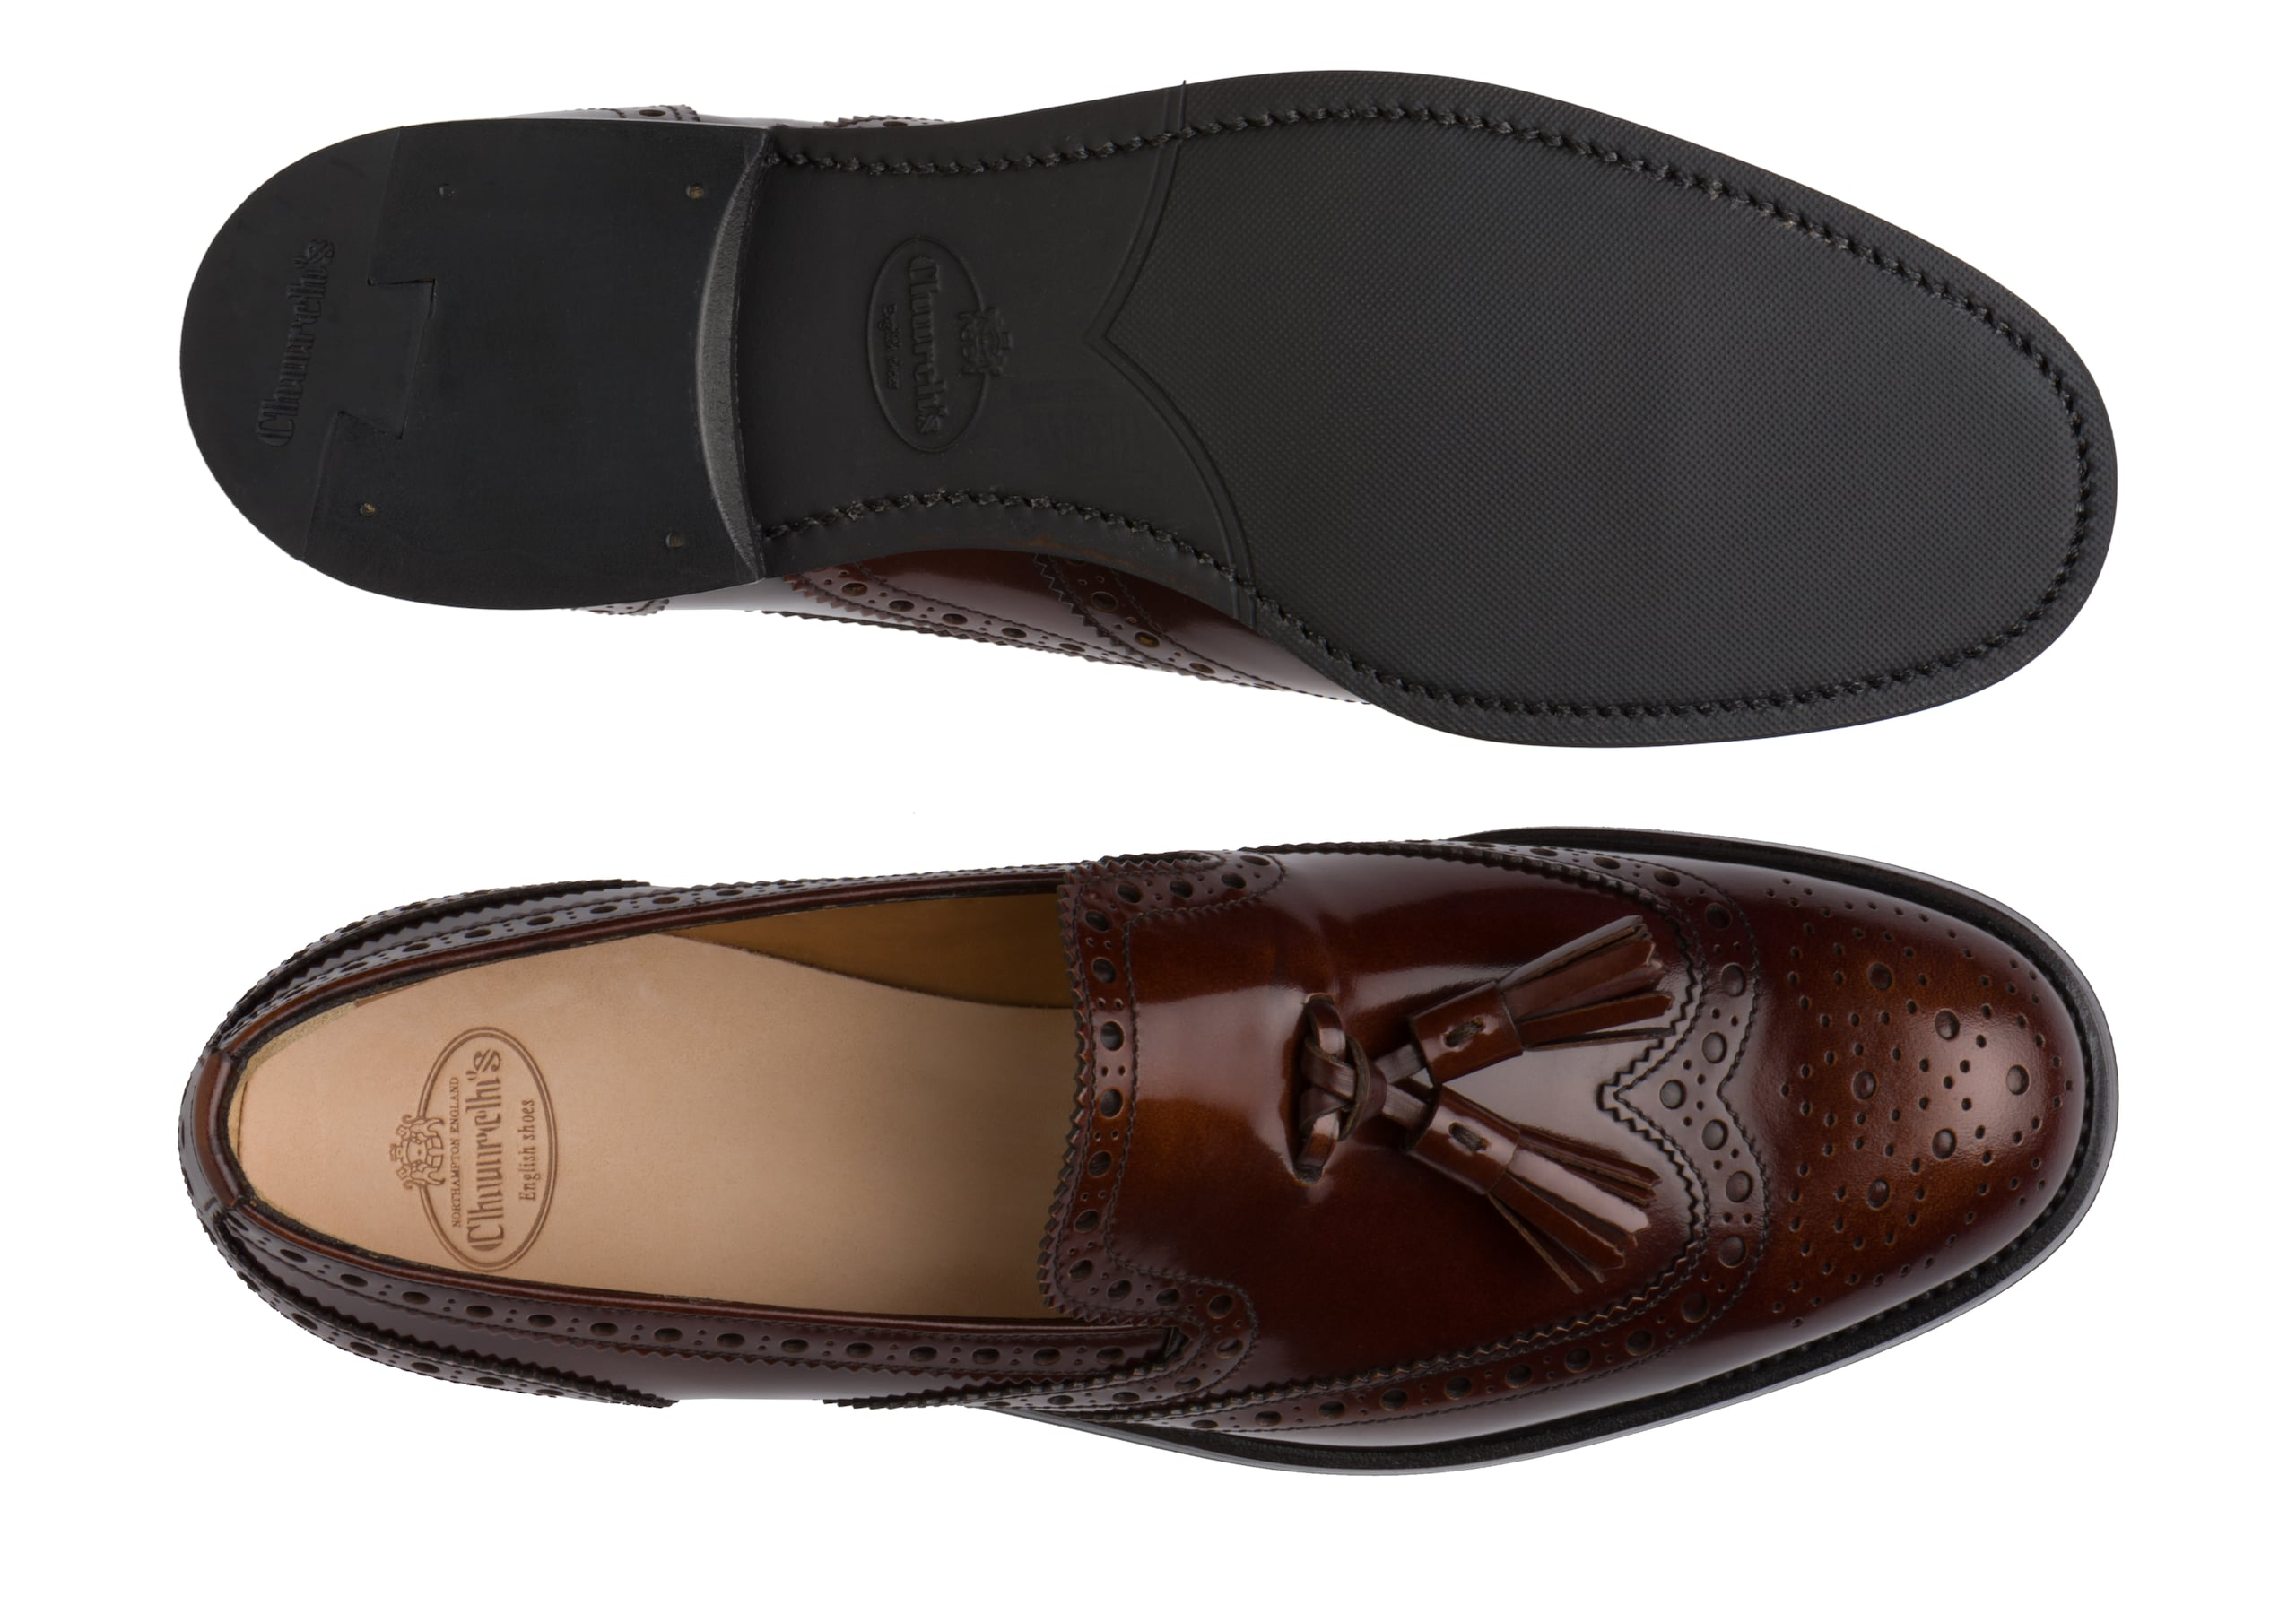 Tamaryn 2 Church's Polished Fumè Brogue Loafer Brown